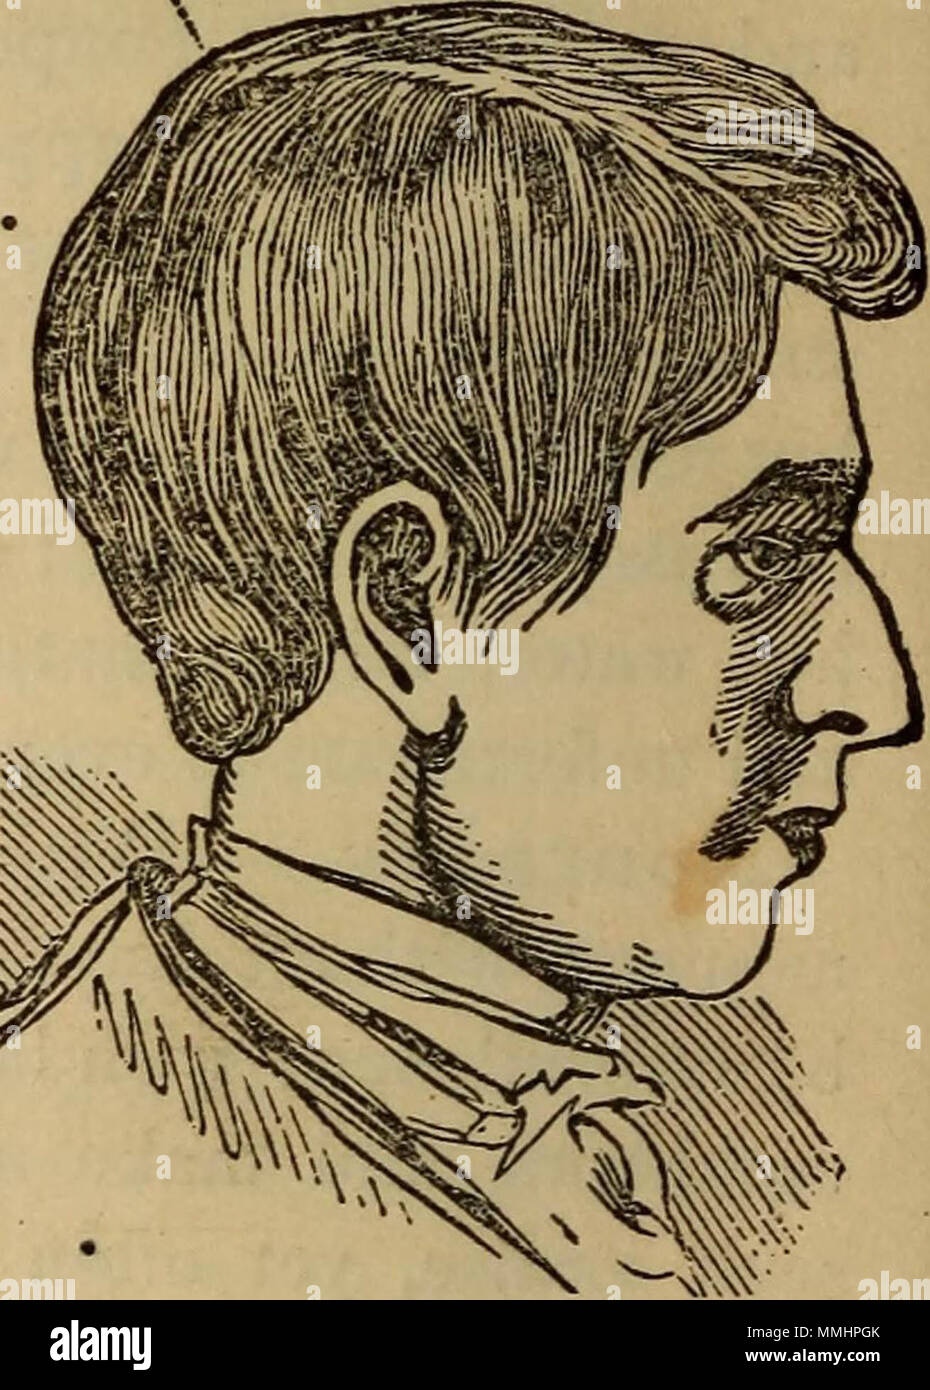 """The practical phrenologist and recorder and delineator of the character and talents of [blank], as marked by [blank] : a compendium of phreno-organic science"" (1869) Stock Photo"